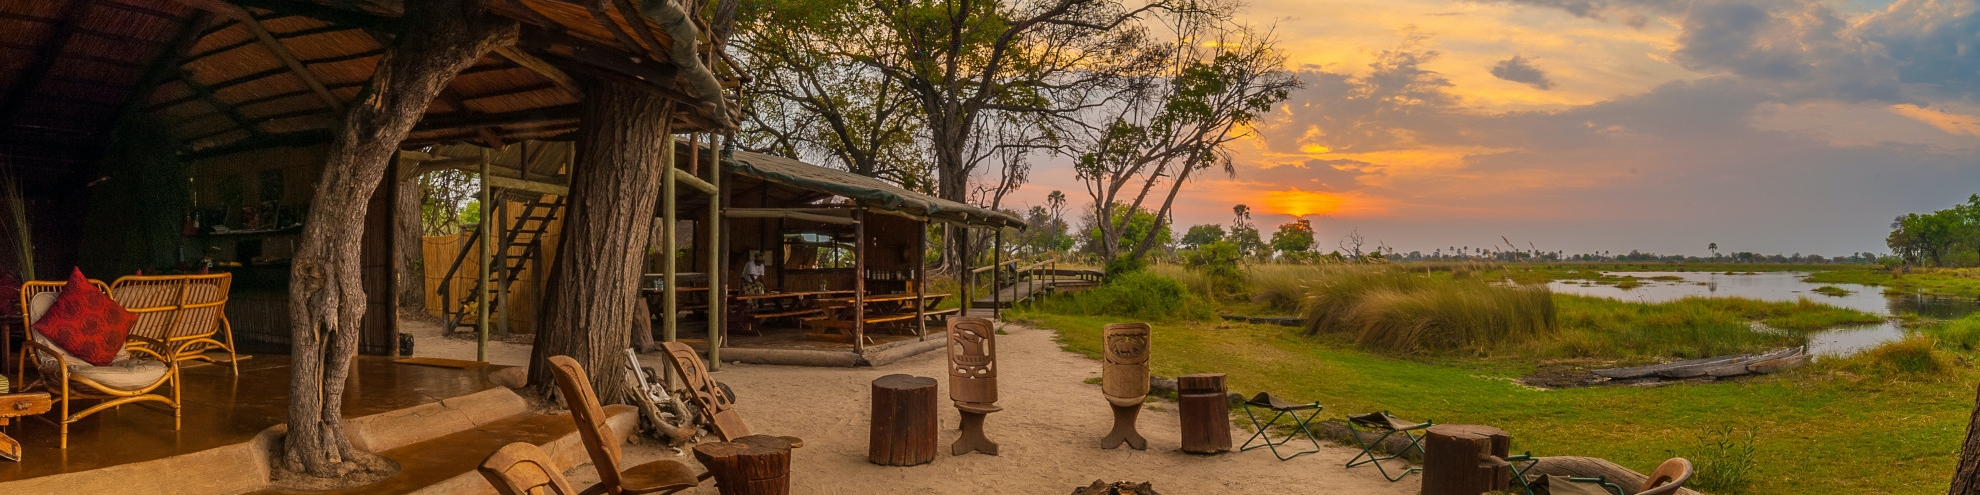 Accommodation in Moremi Game Reserve - Botswana